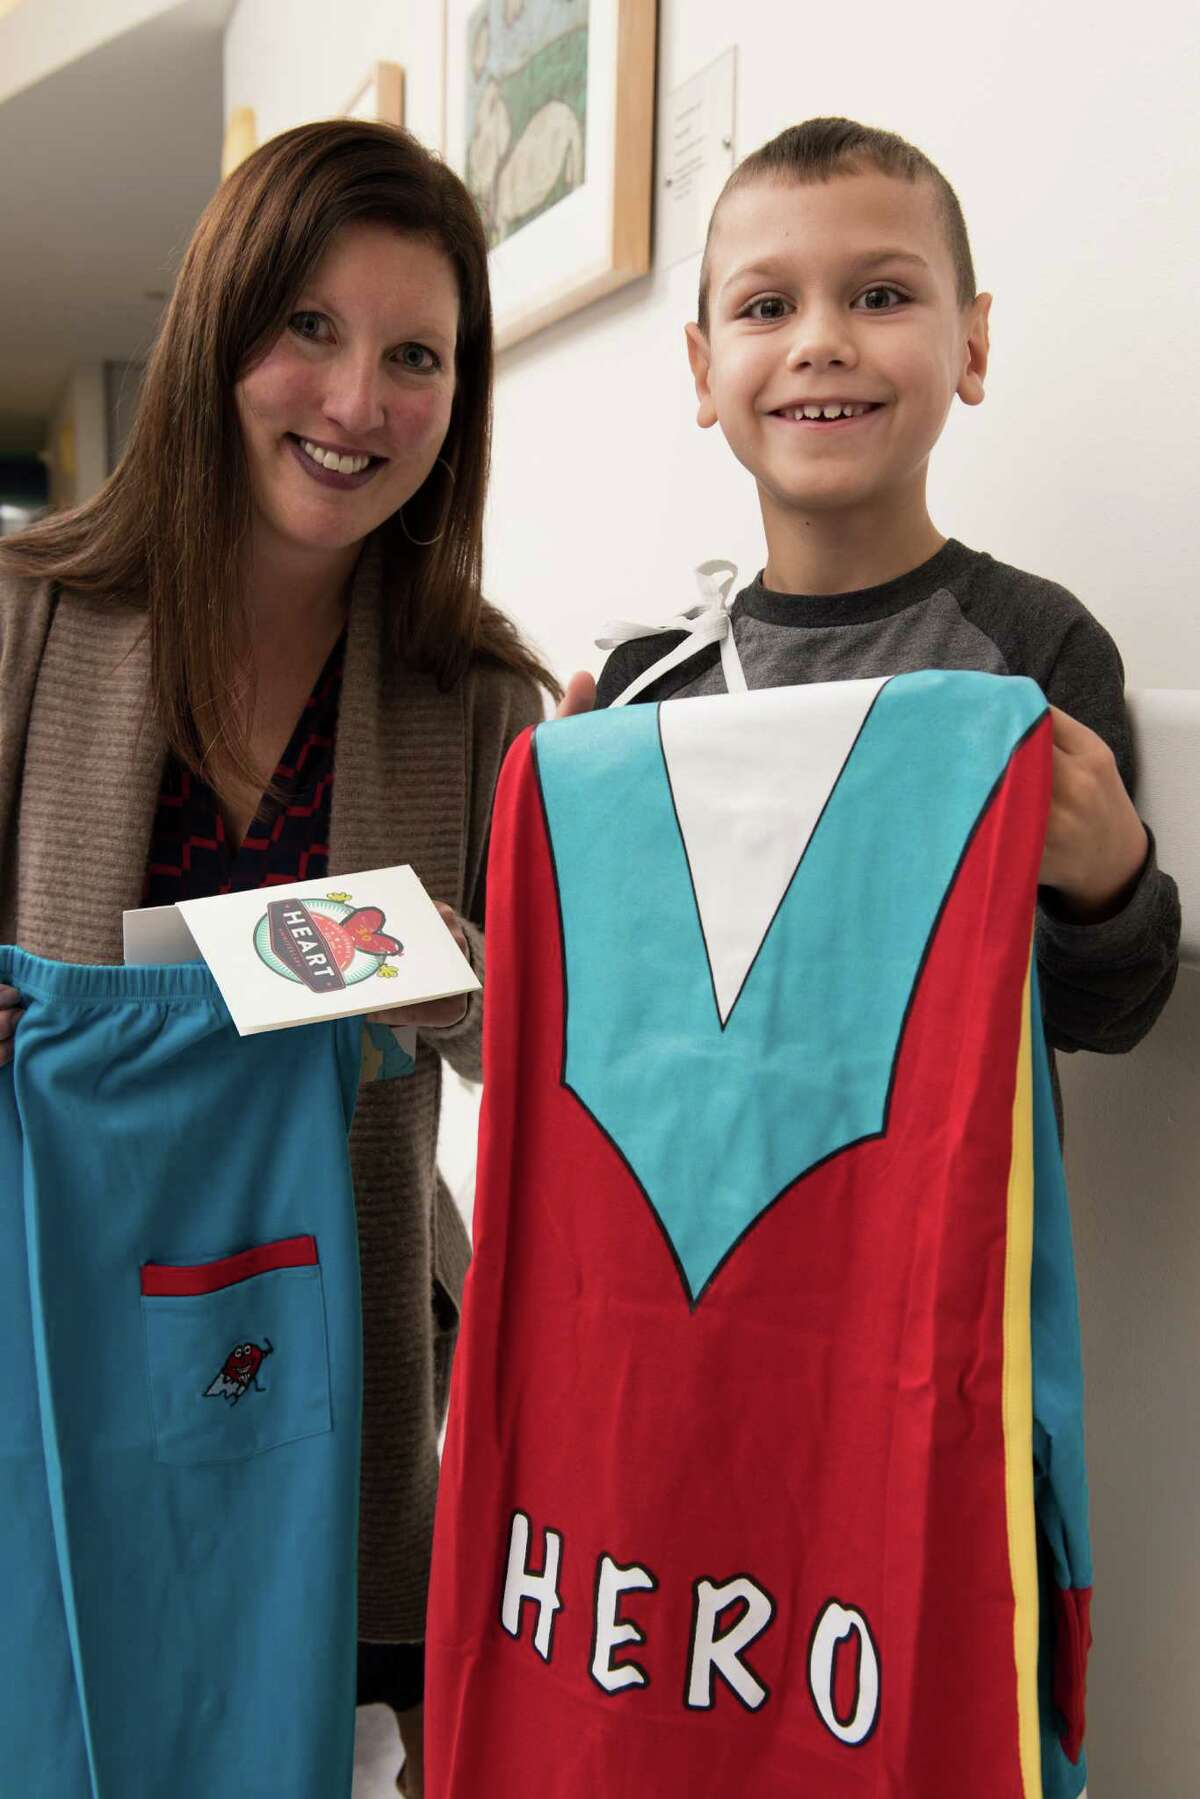 Holly Hancock, an adult congenital heart disease patient, presents hero pajamas to a young patient at Texas Children's.